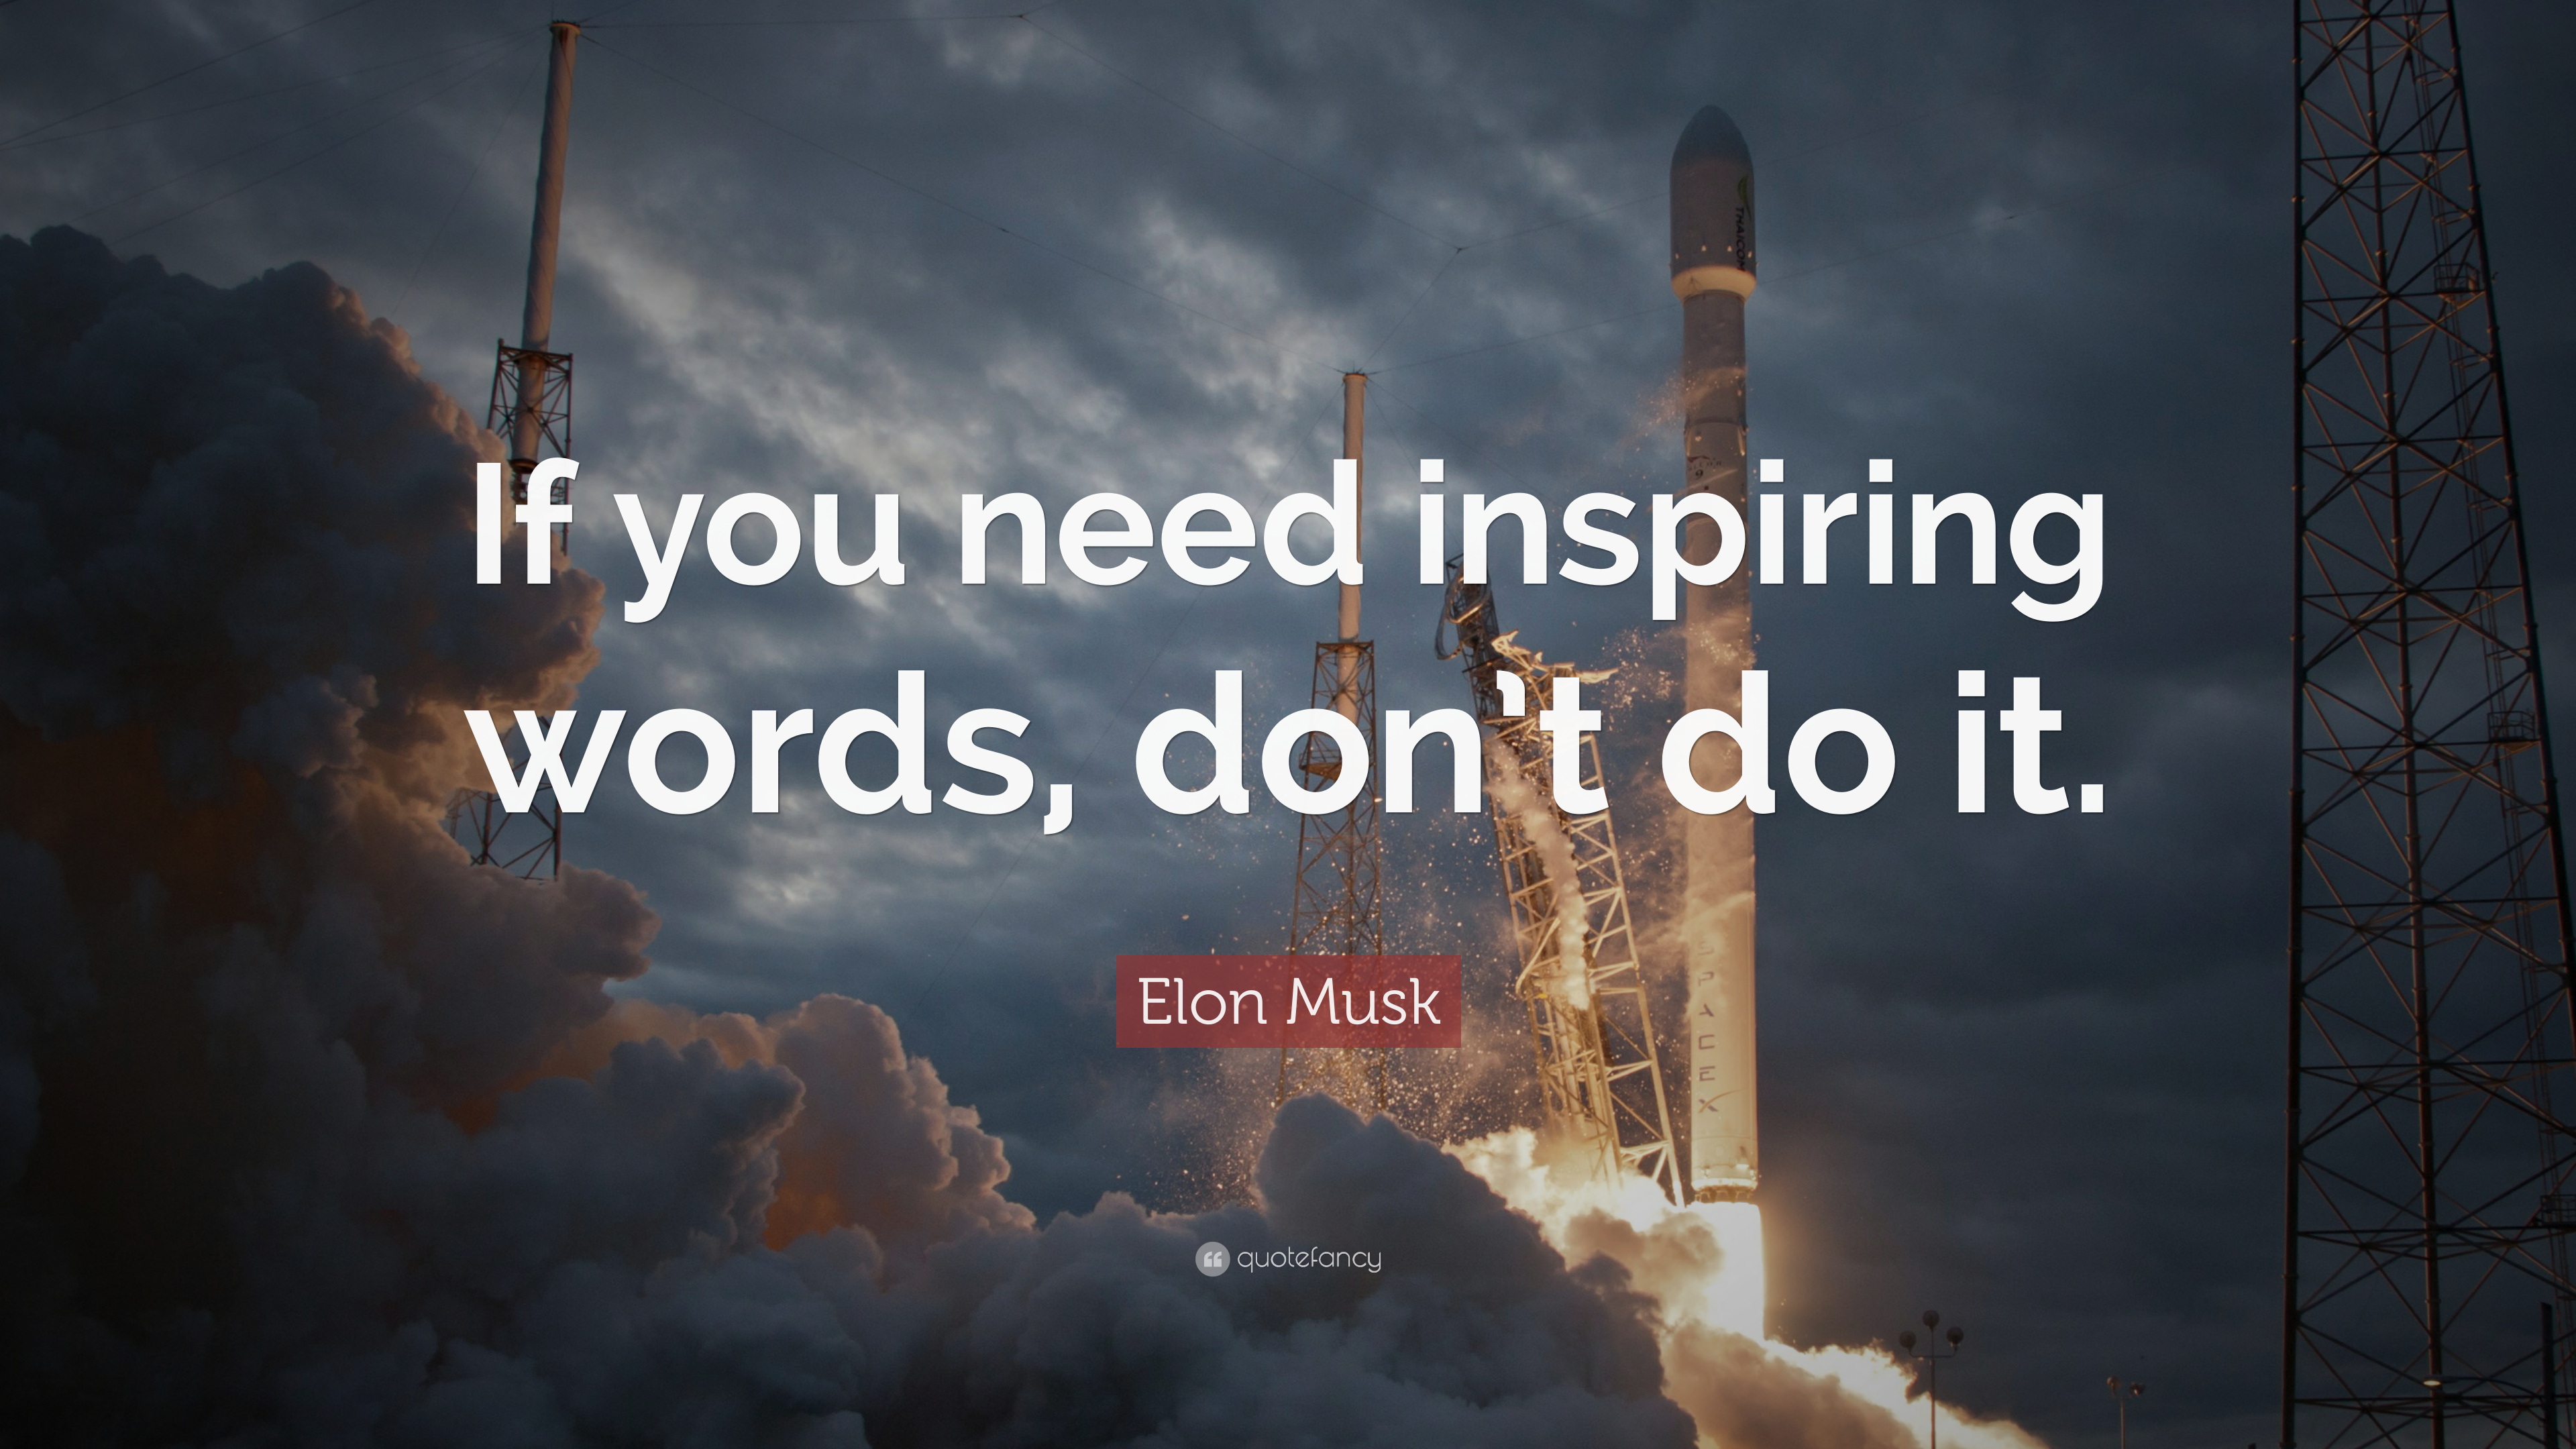 Steve Jobs Motivational Quotes Wallpaper Elon Musk Quotes 100 Wallpapers Quotefancy